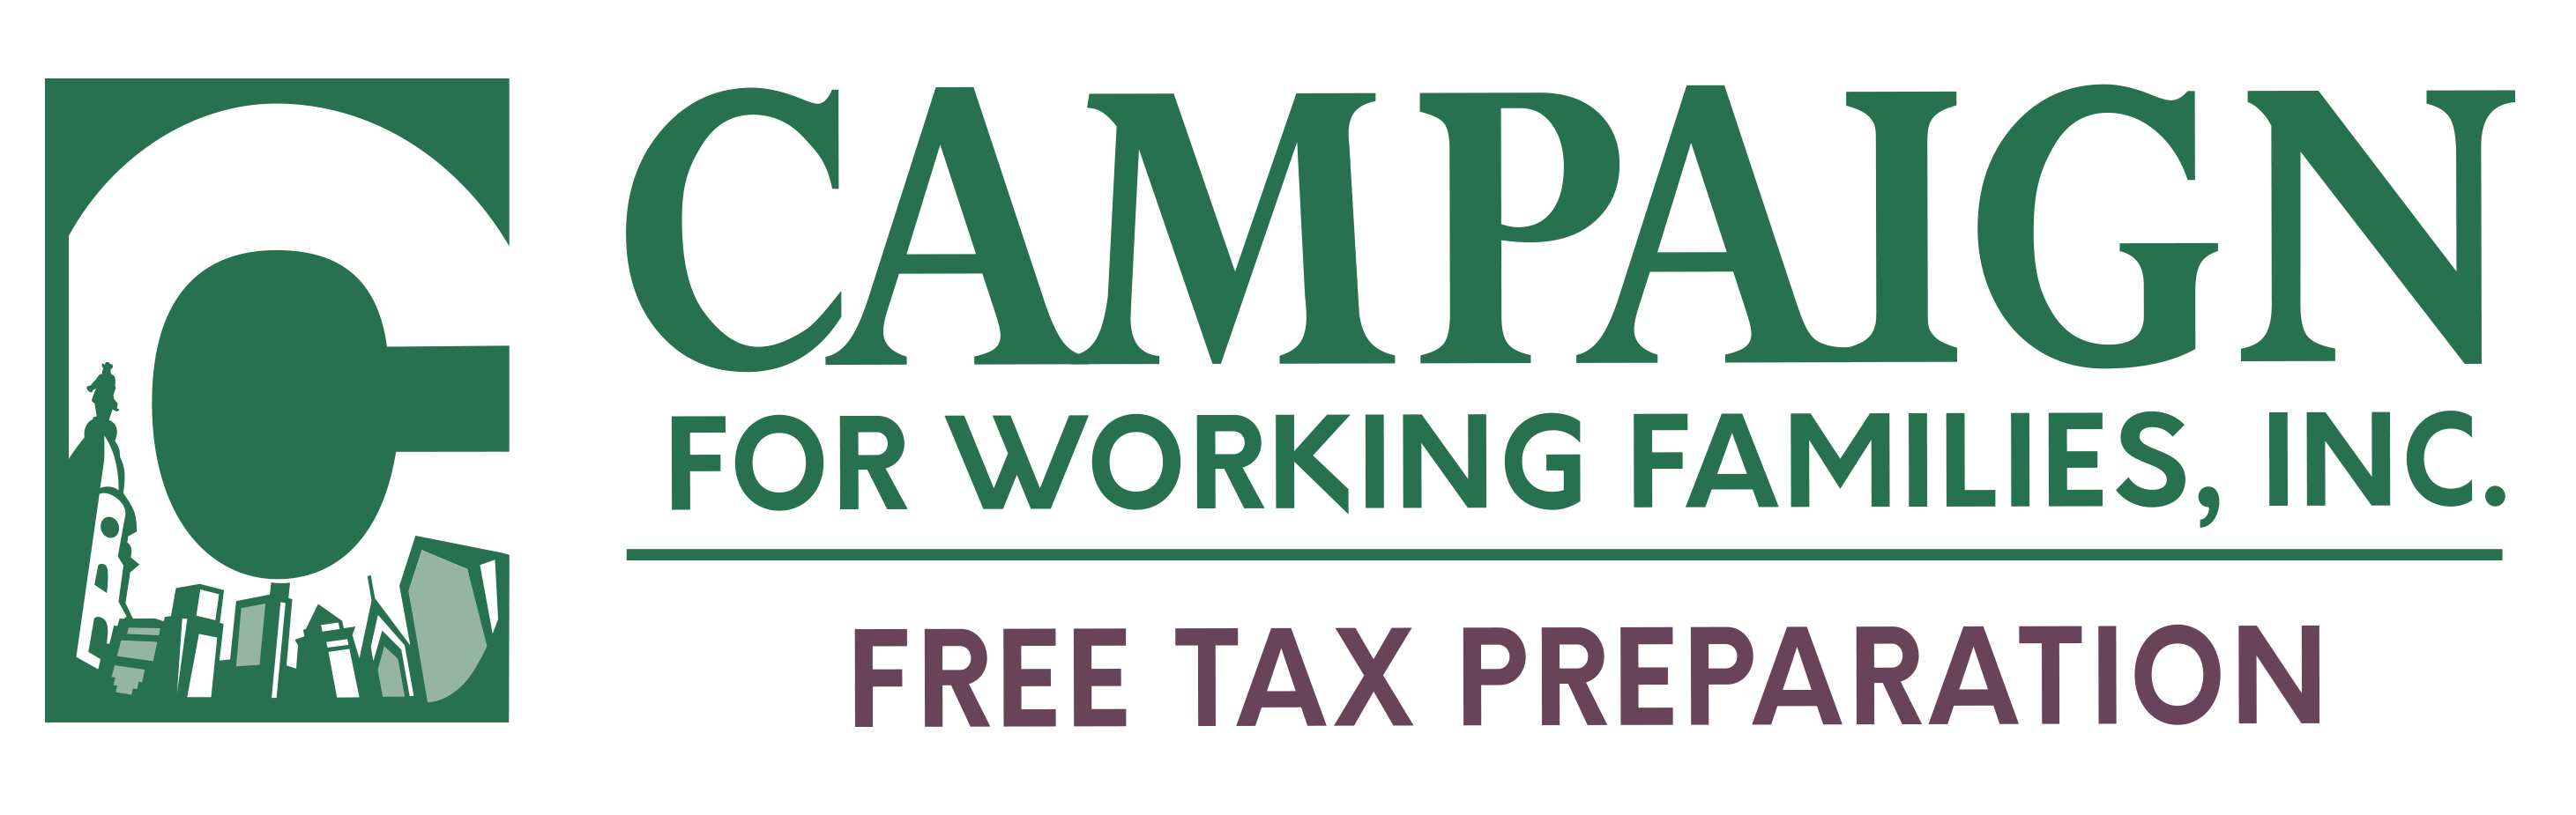 FREE Tax Site Locations | Campaign for Working Families Inc